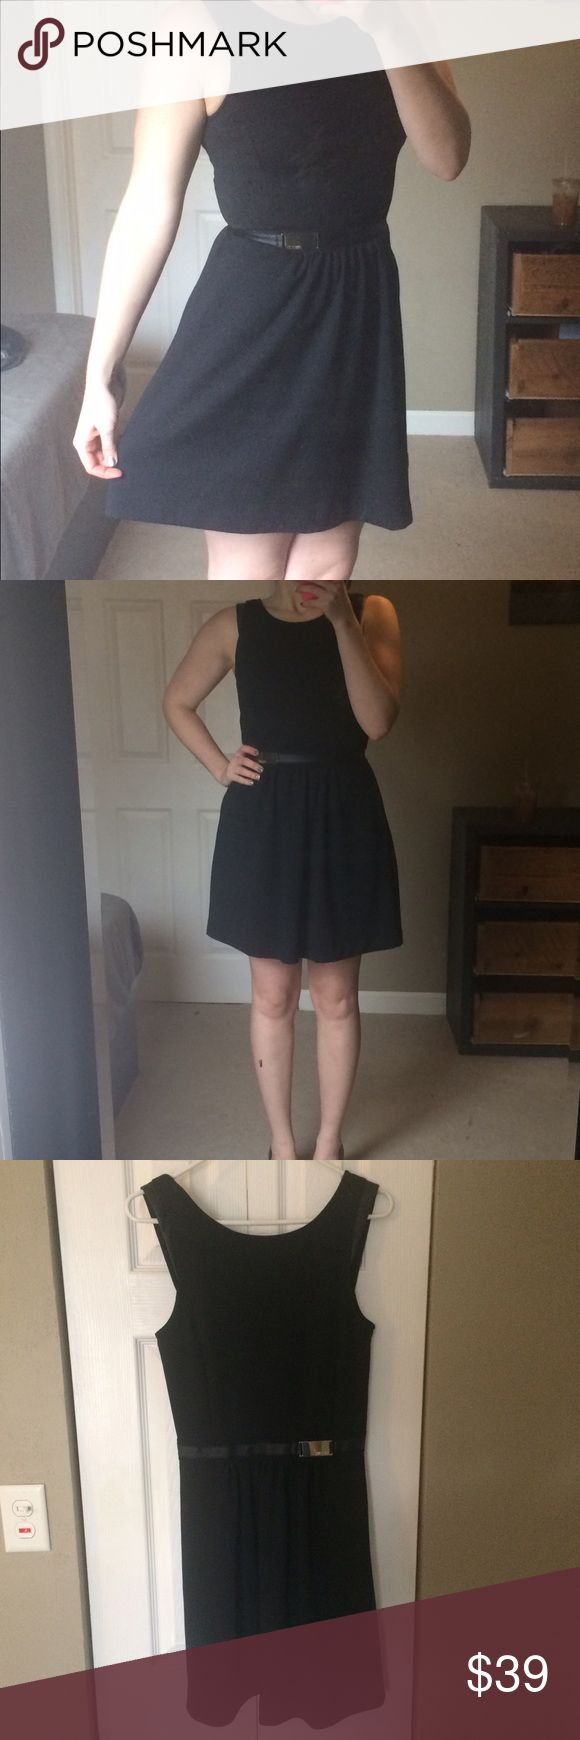 Jennifer Lopez cocktail dress Beautiful black dress with v-cut front and back and cute fake leather detailing. Worn once for a Christmas party and I've just outgrown it. Professionally dry cleaned Jennifer Lopez Dresses Midi